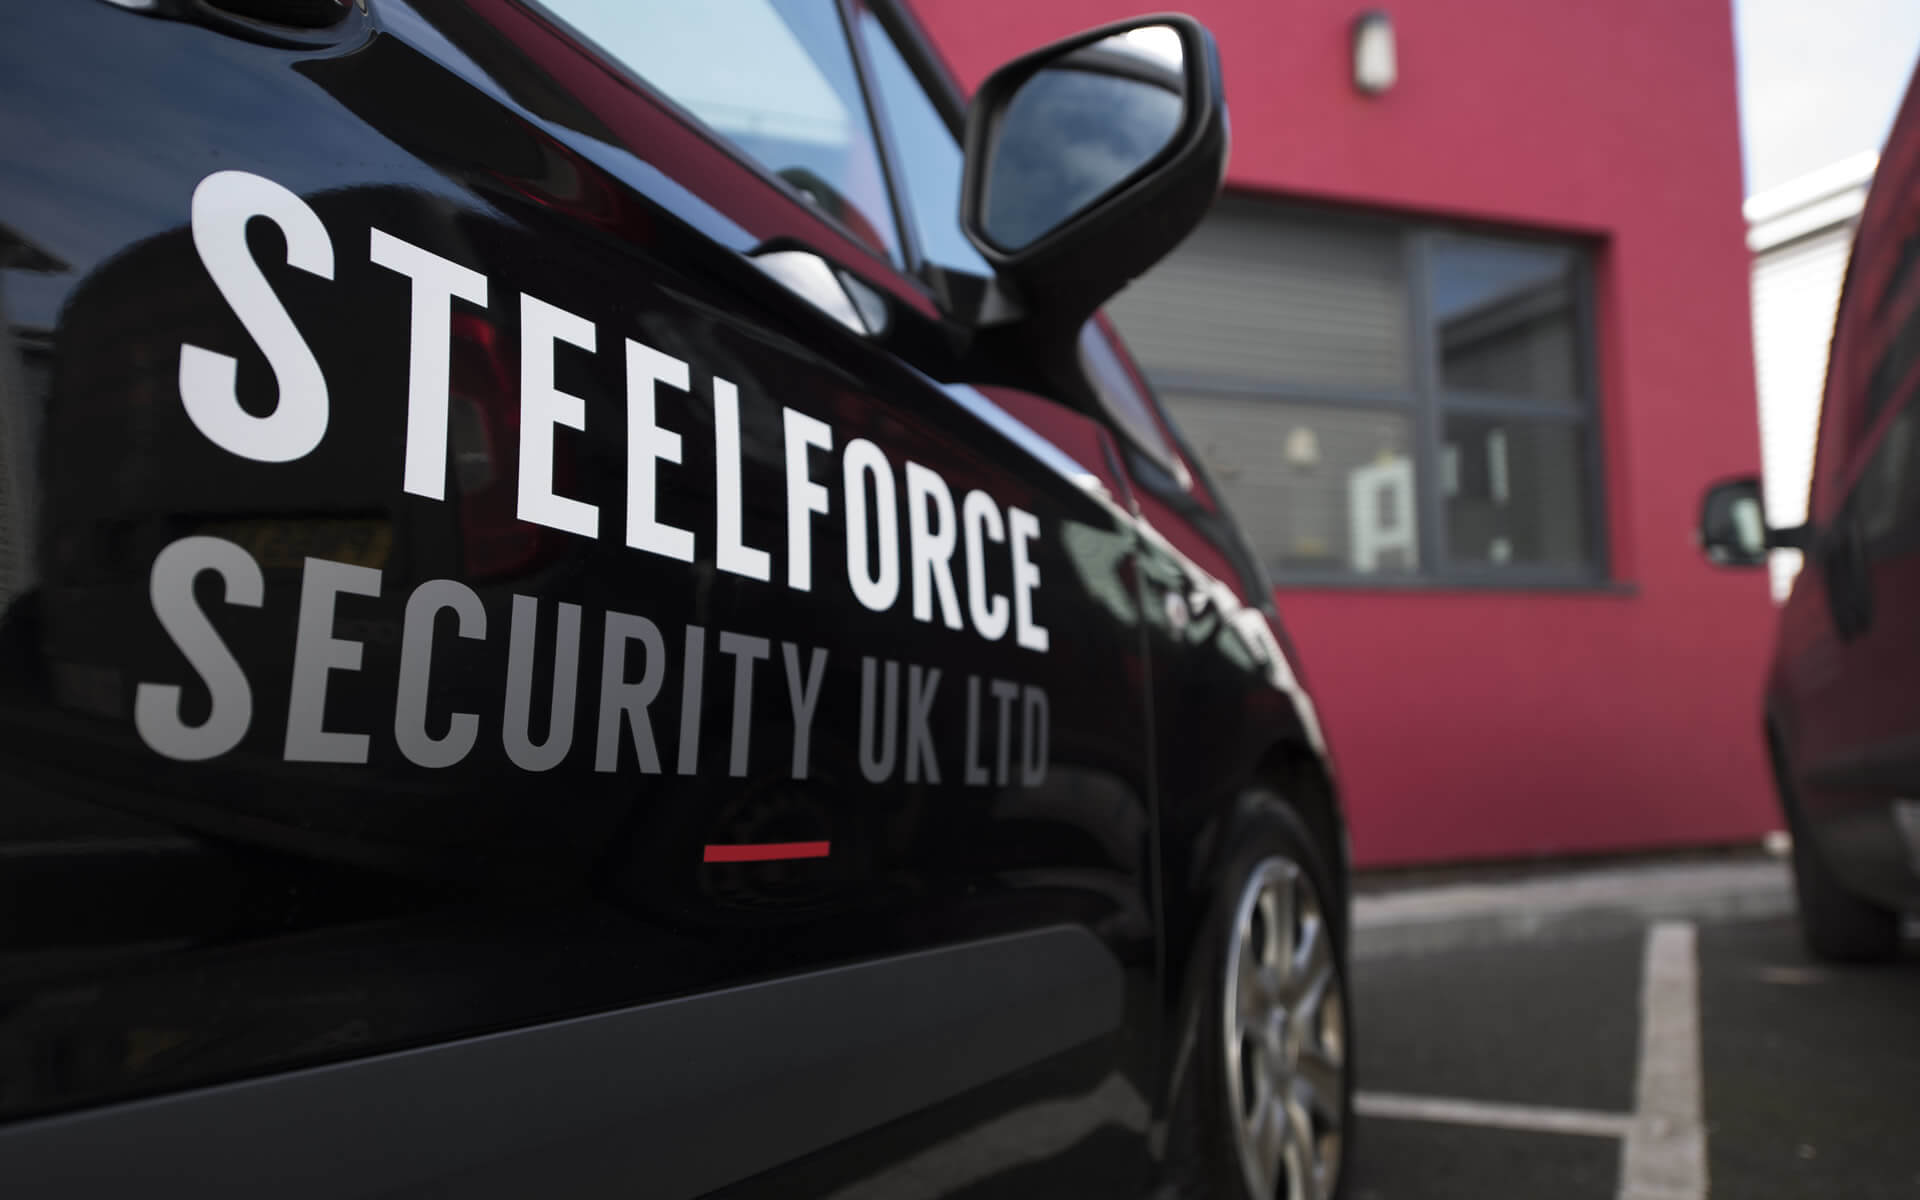 Steelforce Security Fleet